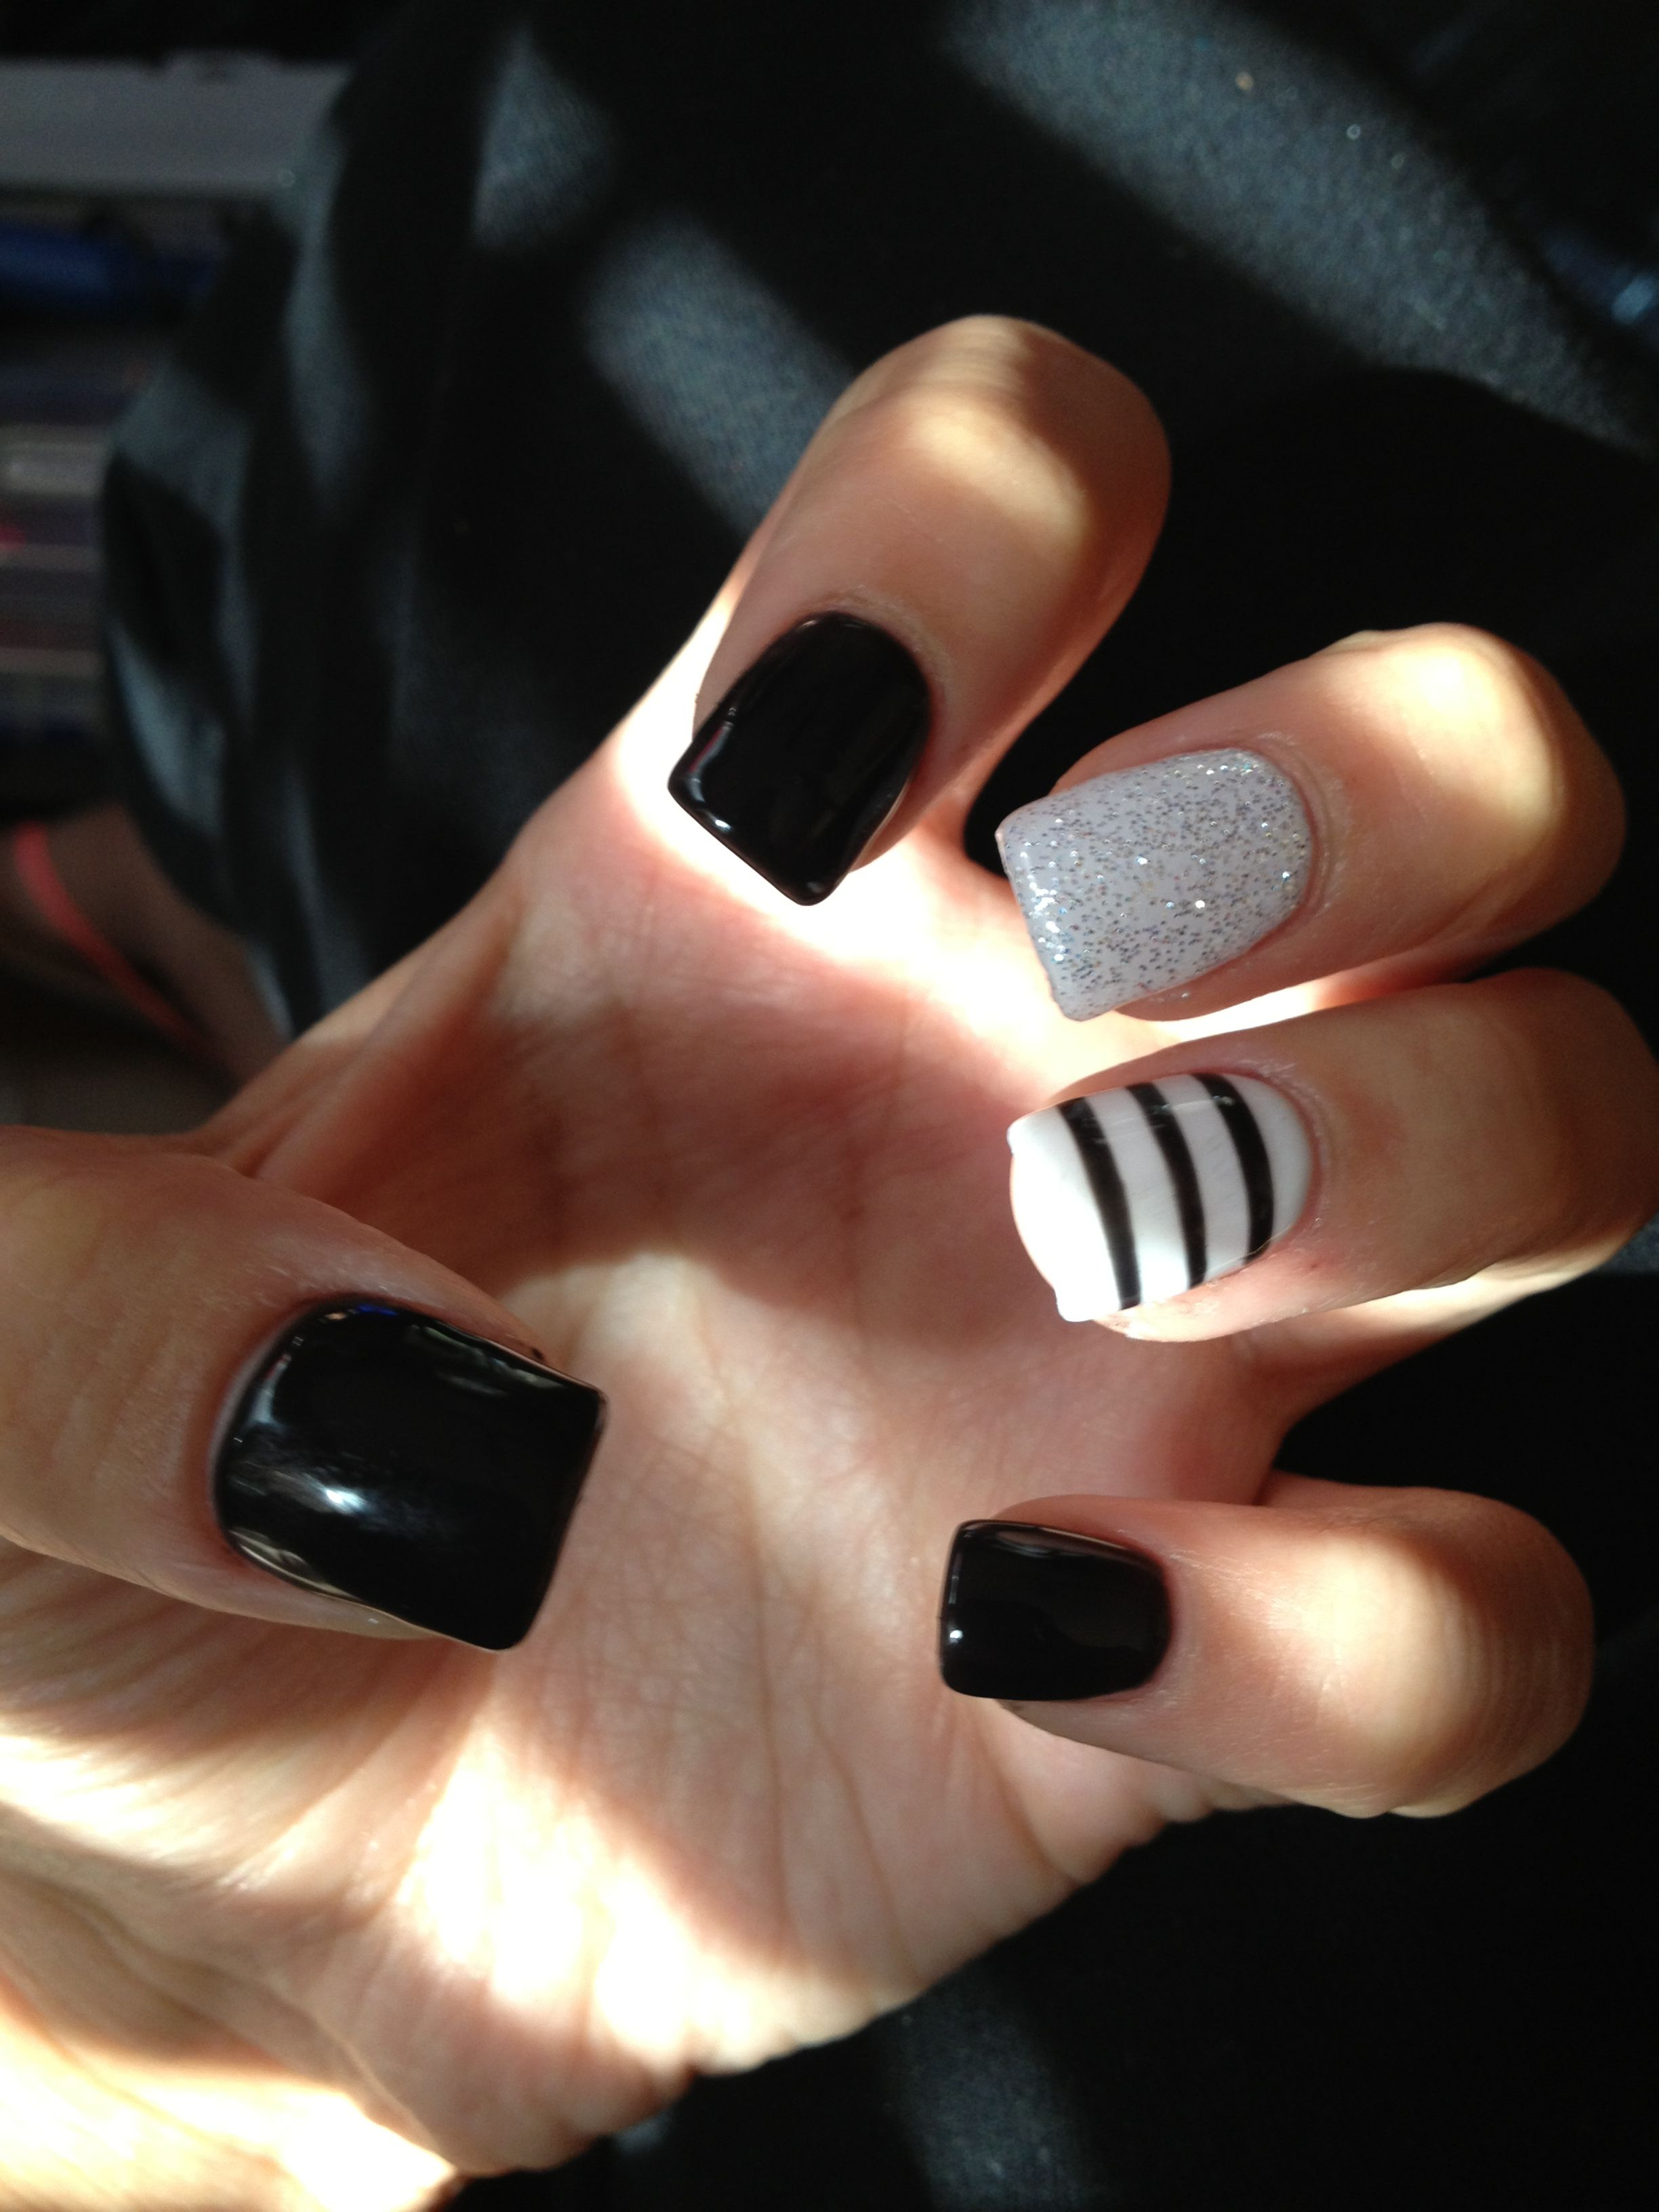 Bezaubernd Schwarze Nägel Mit Glitzer Das Beste Von Black And White Nails With Glitter And